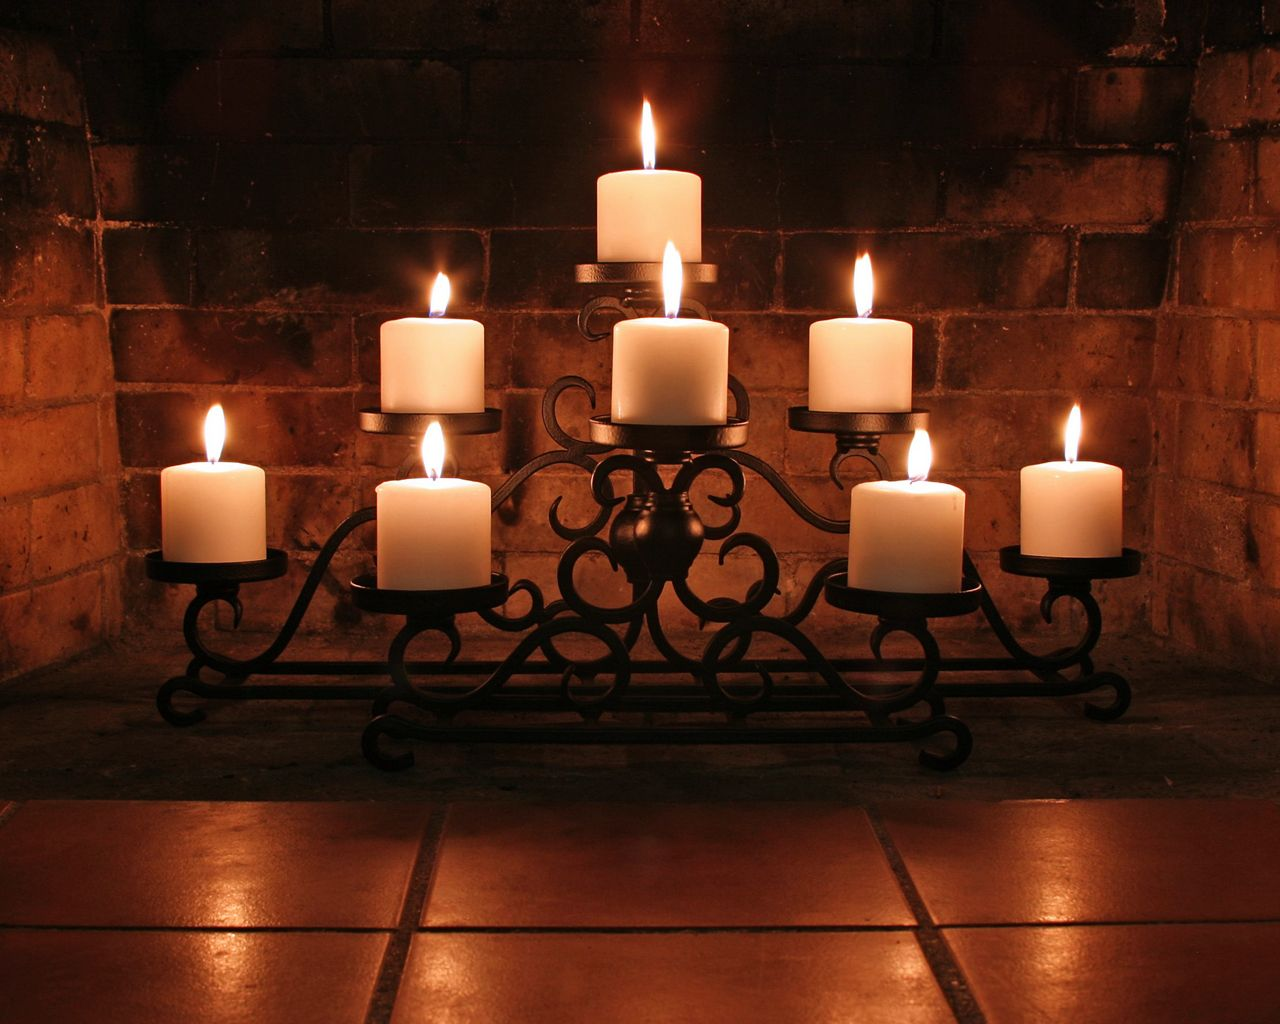 Romantic Candle Light Romantic Candlelight Pictures Candles At Night 1028x1024 No 2 Wallpaper Candles In Fireplace Fireplace Candelabra Candle Displays